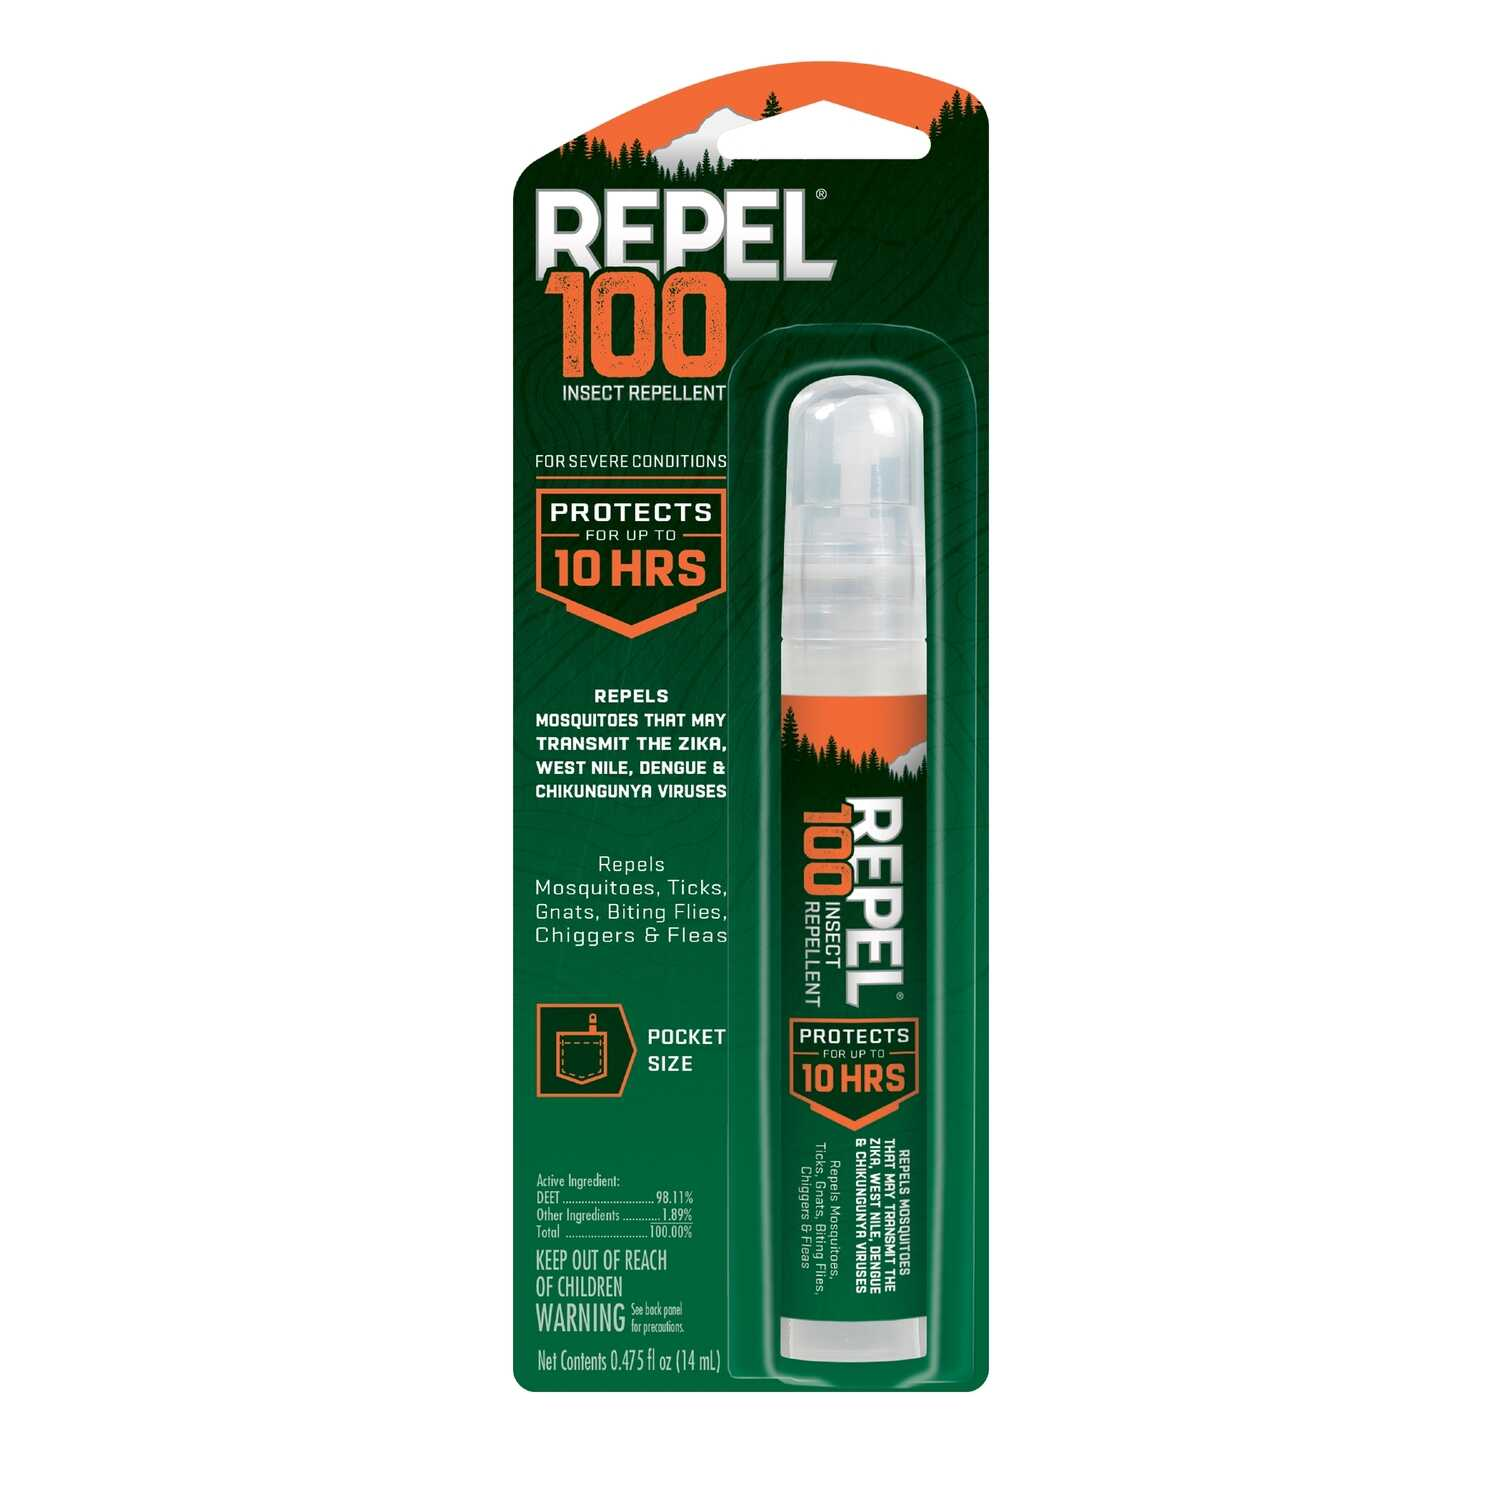 Repel Insect Repellent Liquid For Ticks, Chiggers, Biting Flies